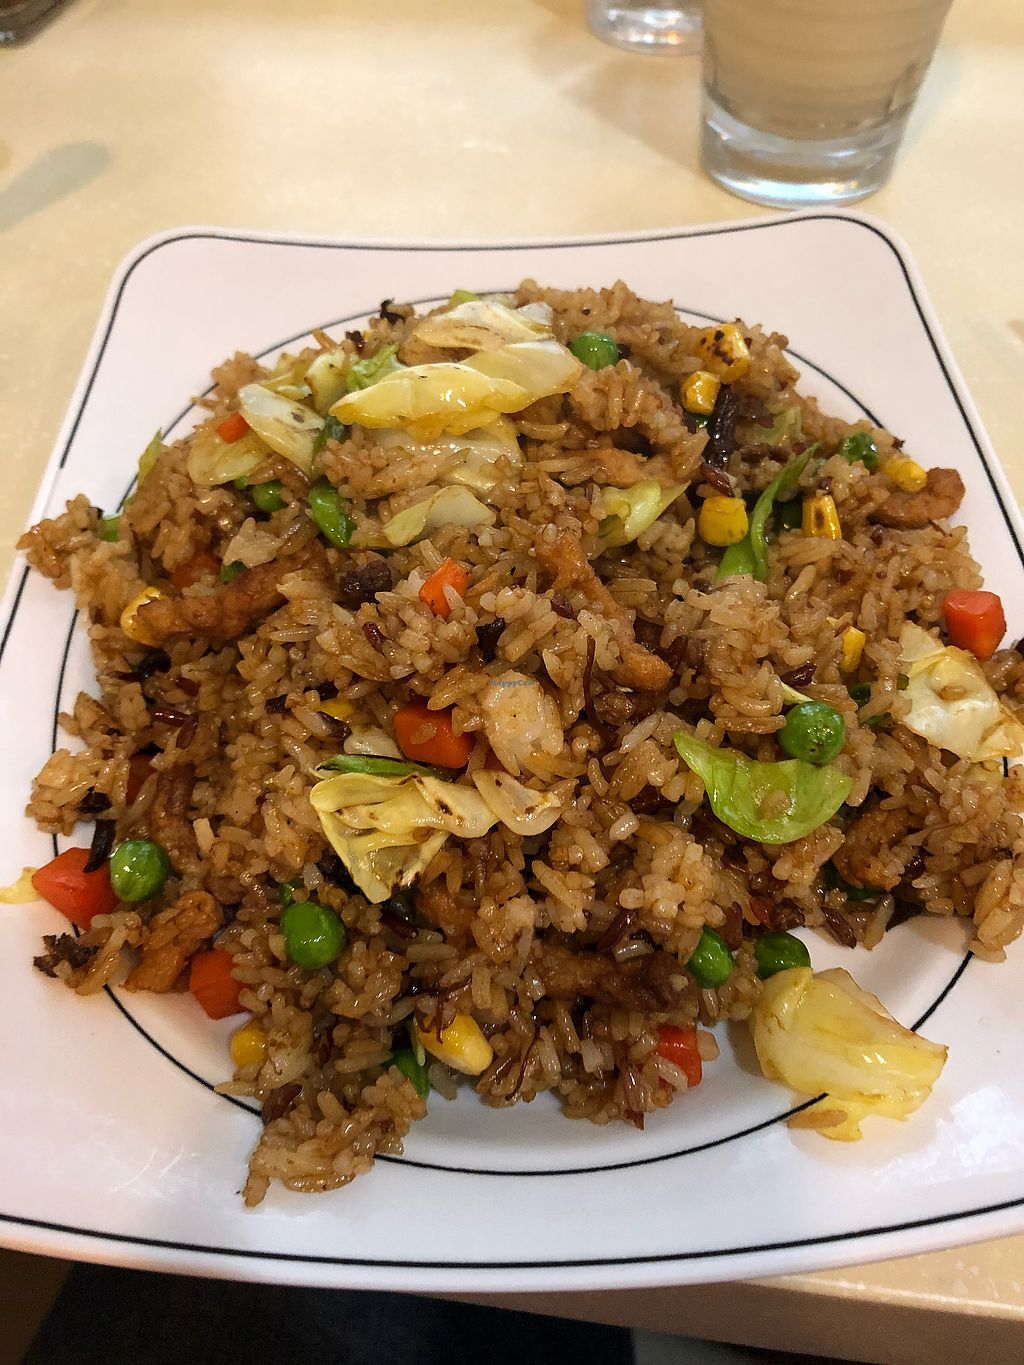 """Photo of Loving Hut - Wan Chai  by <a href=""""/members/profile/gen0co"""">gen0co</a> <br/>Fried rice with x/o sauce <br/> January 13, 2018  - <a href='/contact/abuse/image/19570/346018'>Report</a>"""